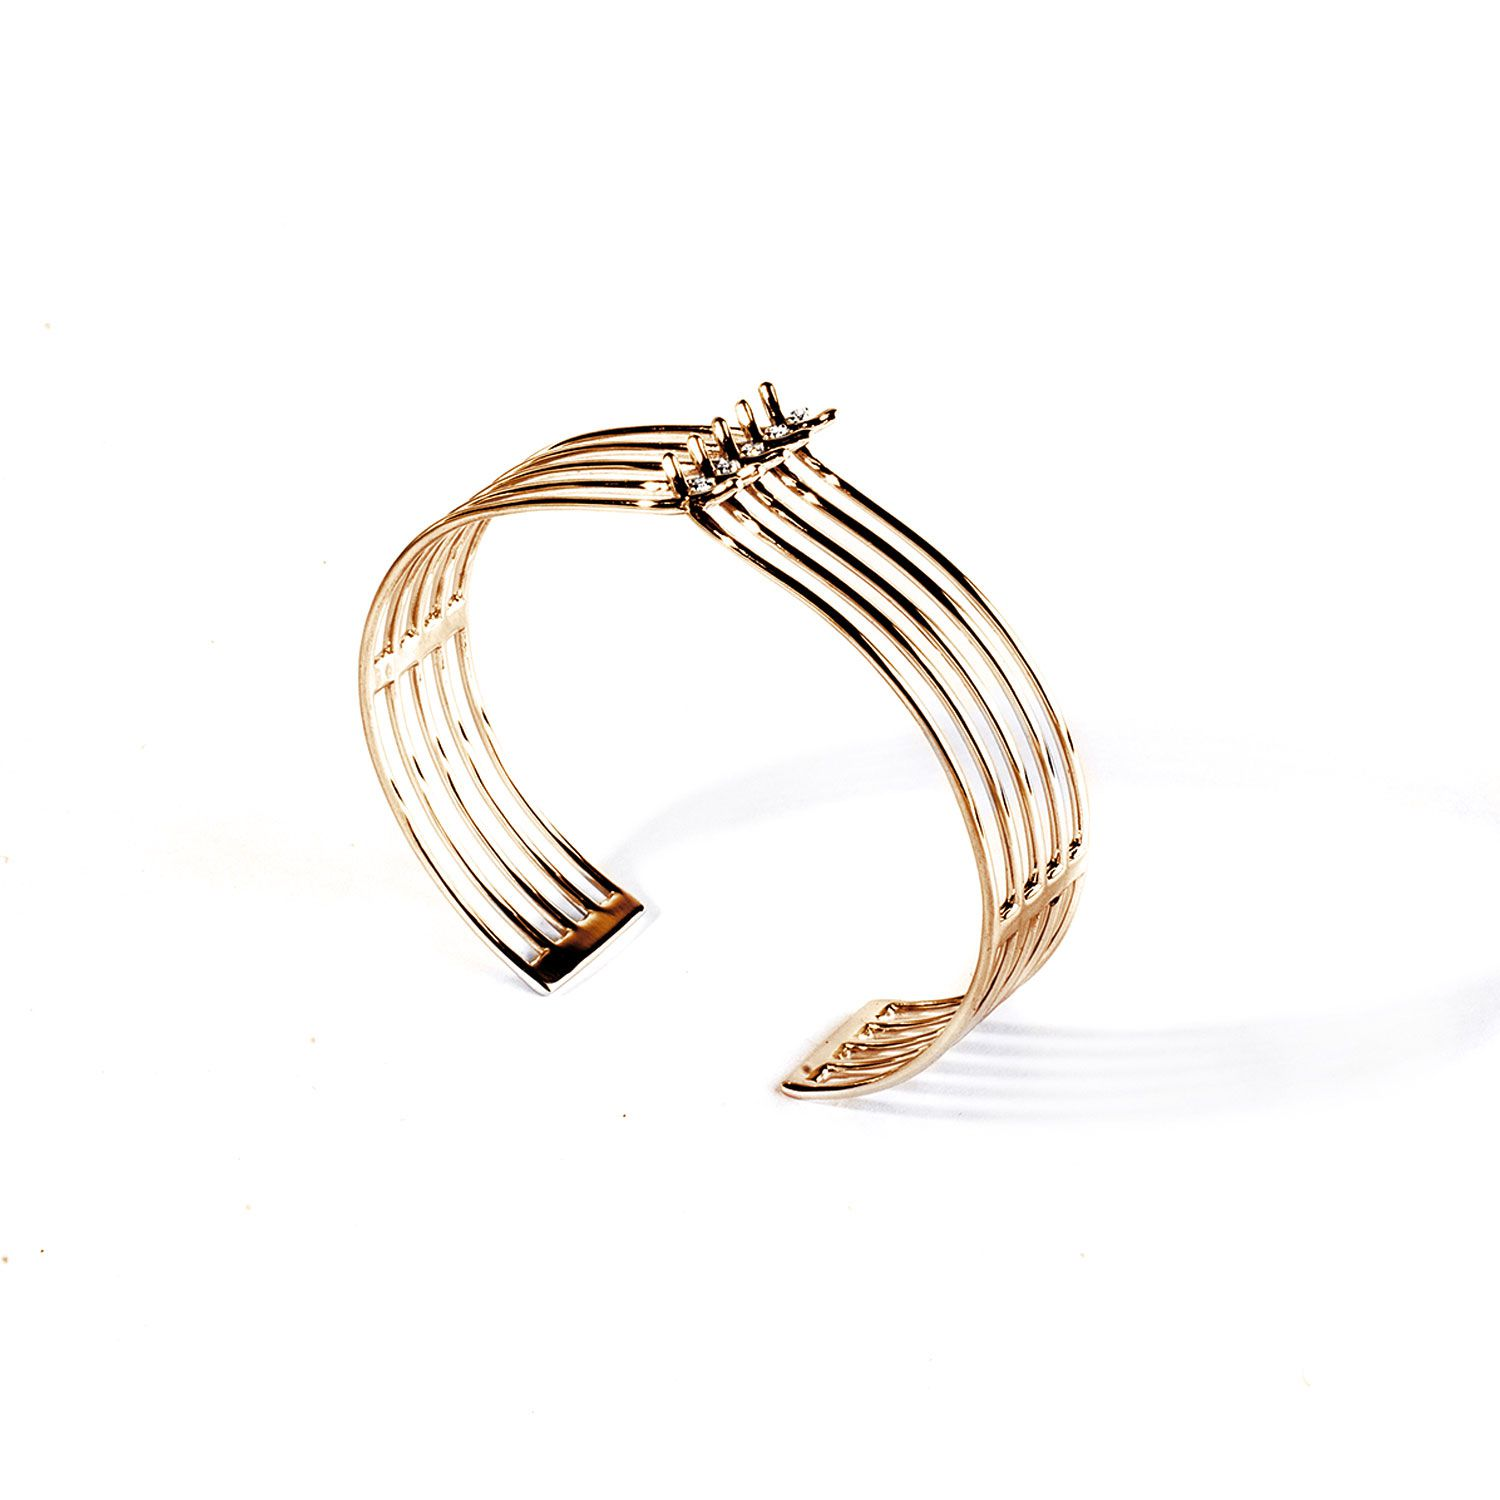 5 element 'Spinae' bracelet Yellow gold and diamond bracelet